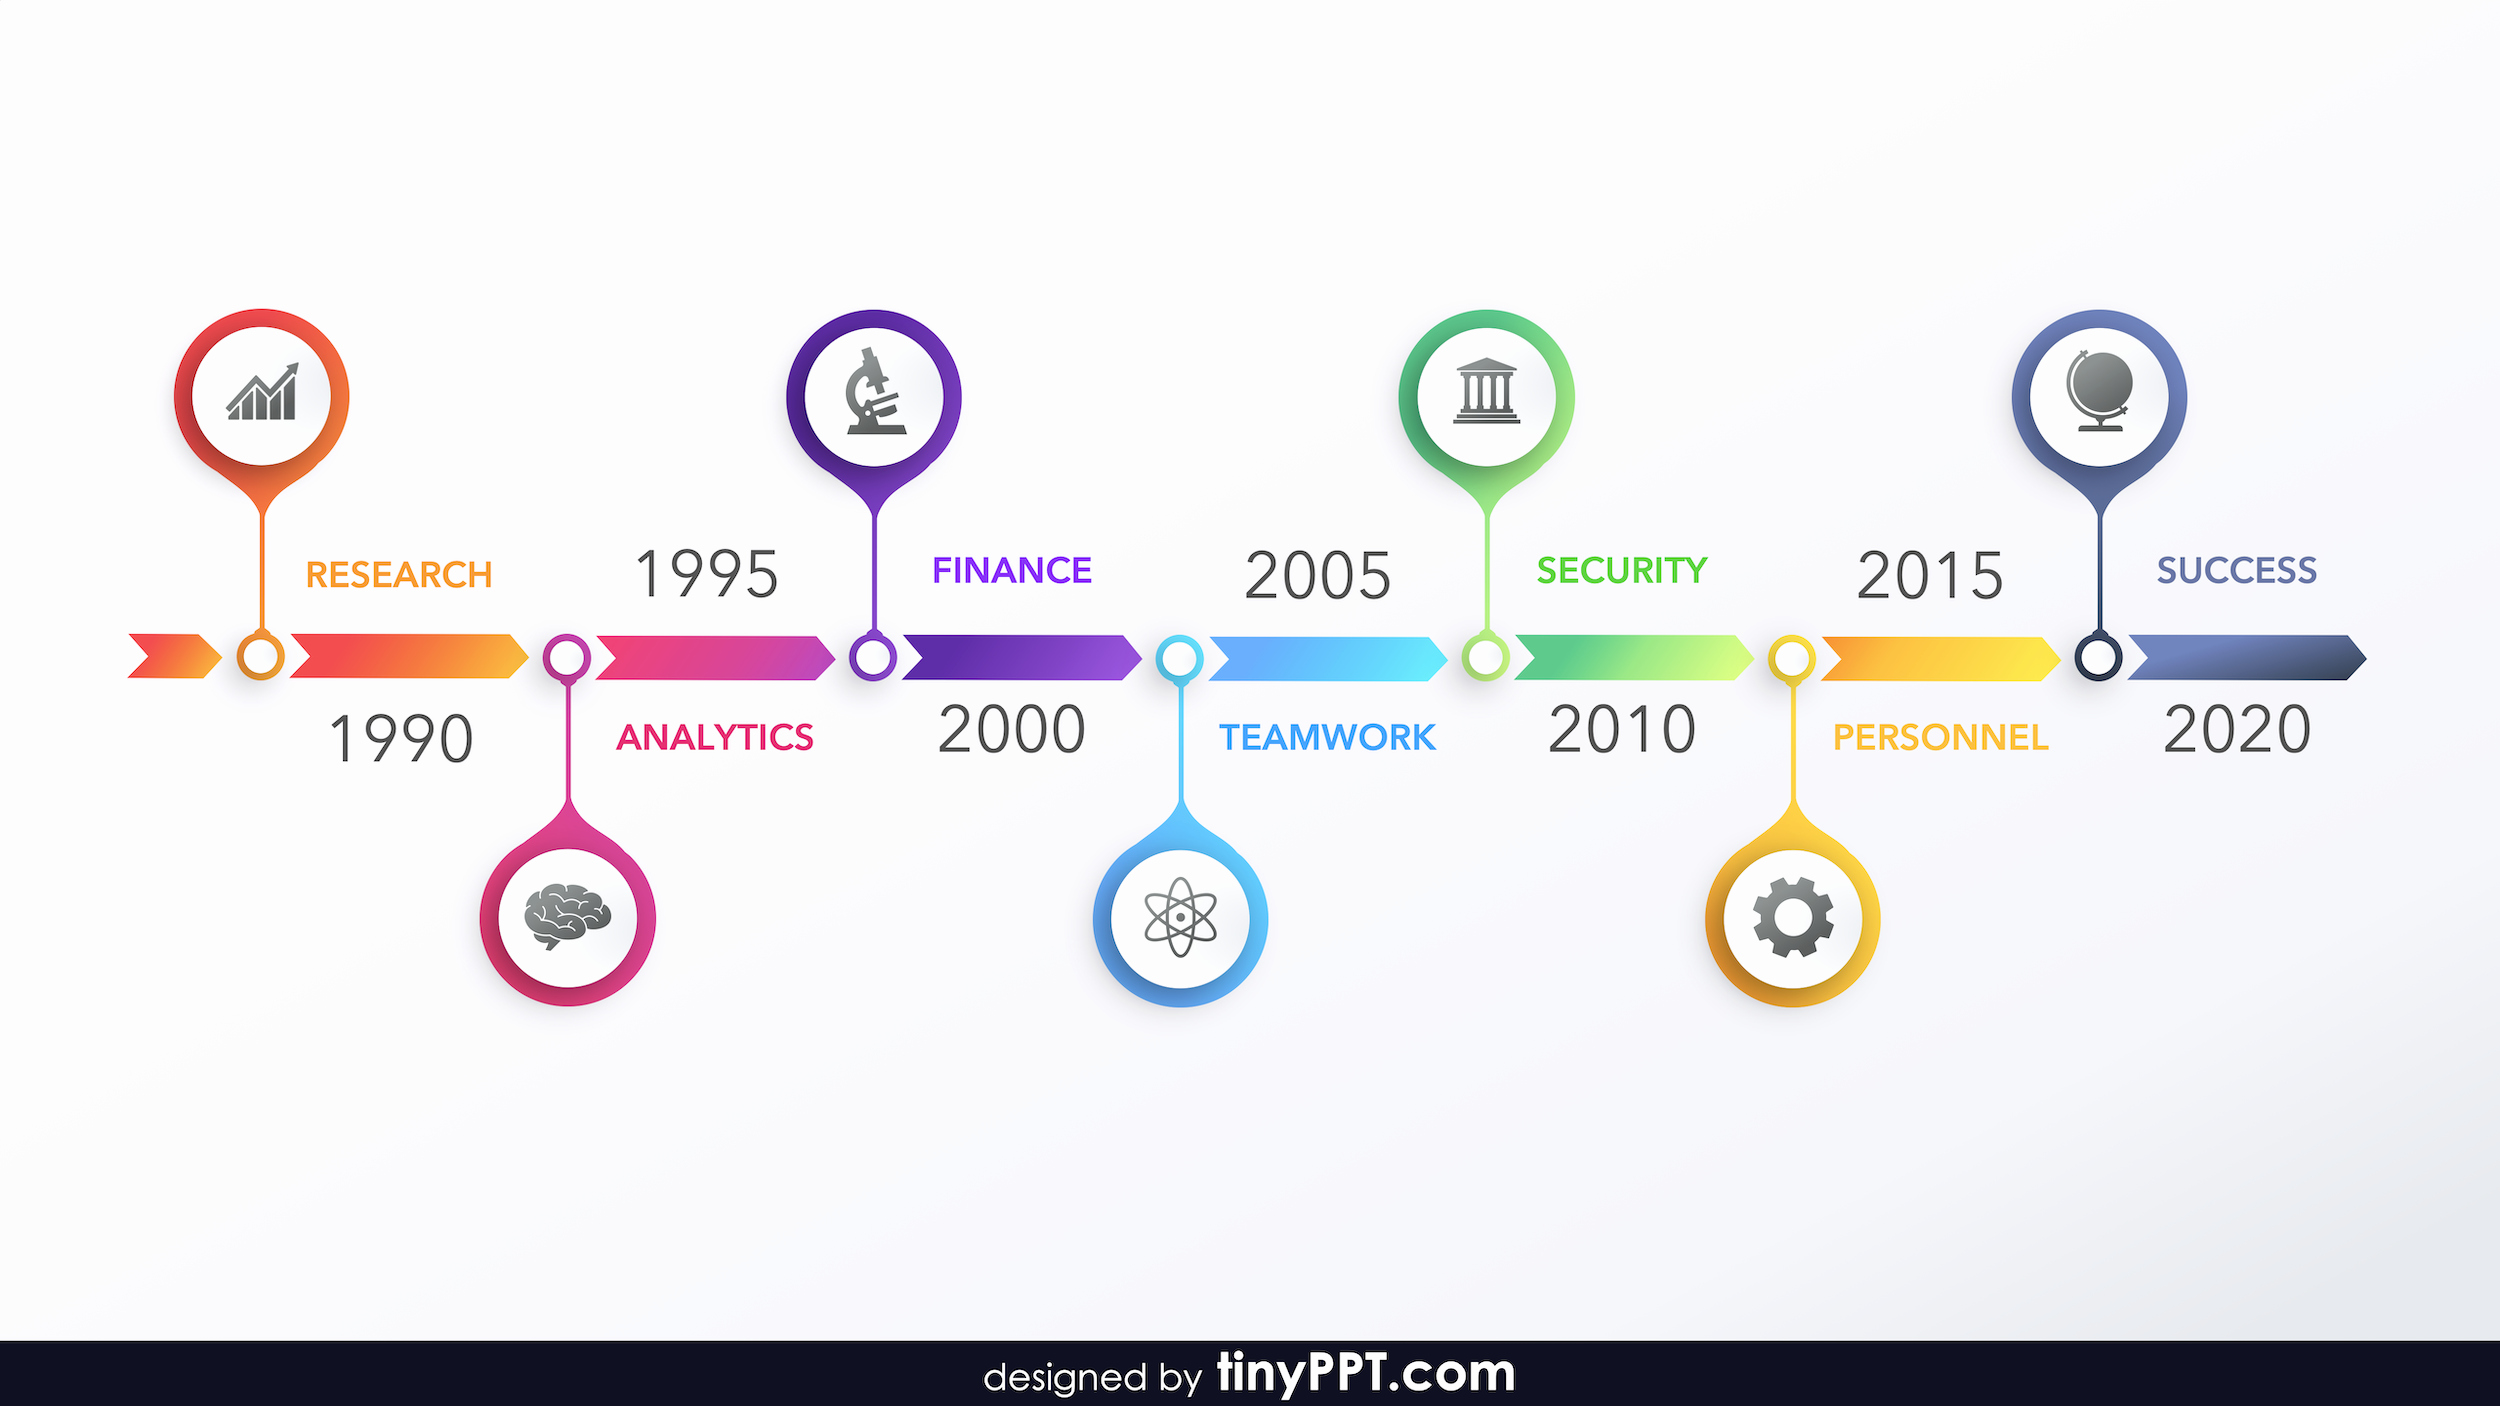 Powerpoint Timeline Template Free Beautiful Timeline Powerpoint Template Free